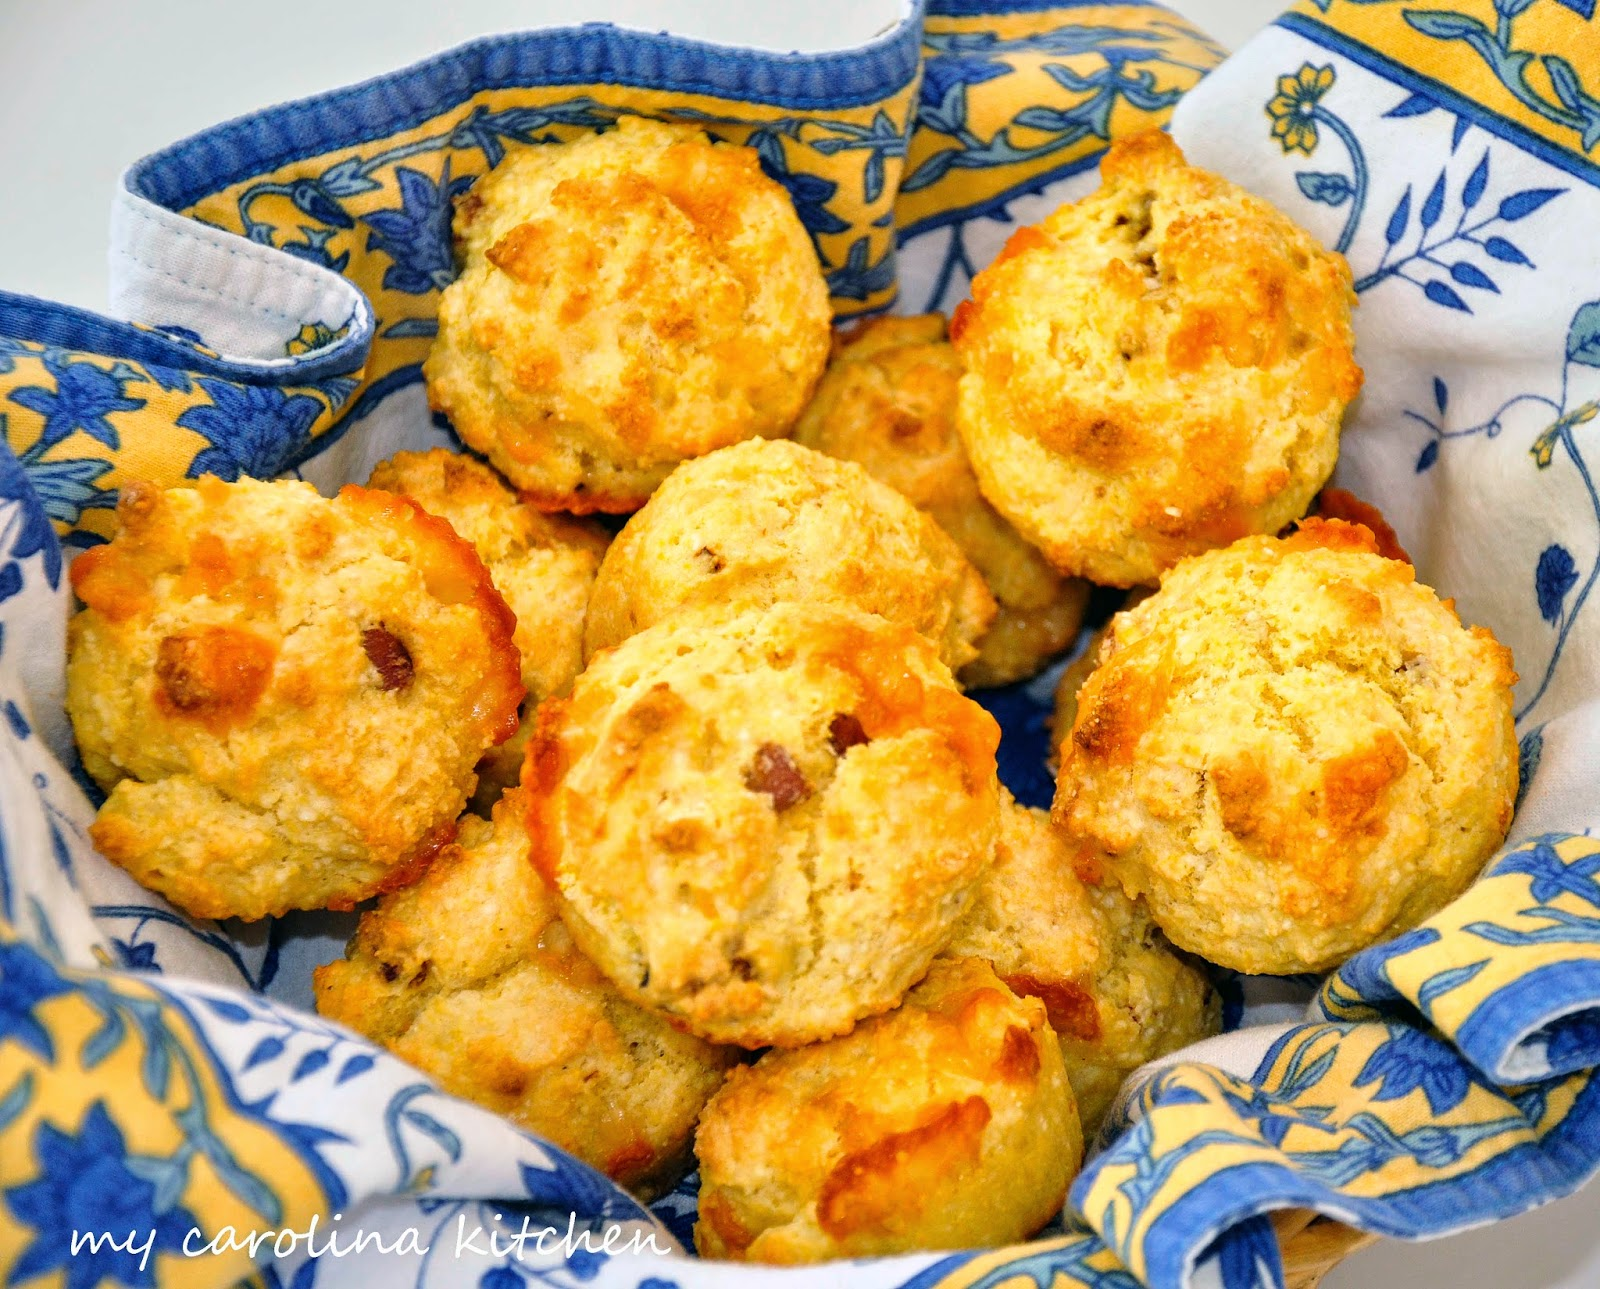 ... Kitchen: Hearty Ham and Cheese Muffins for On-the-go Breakfasts